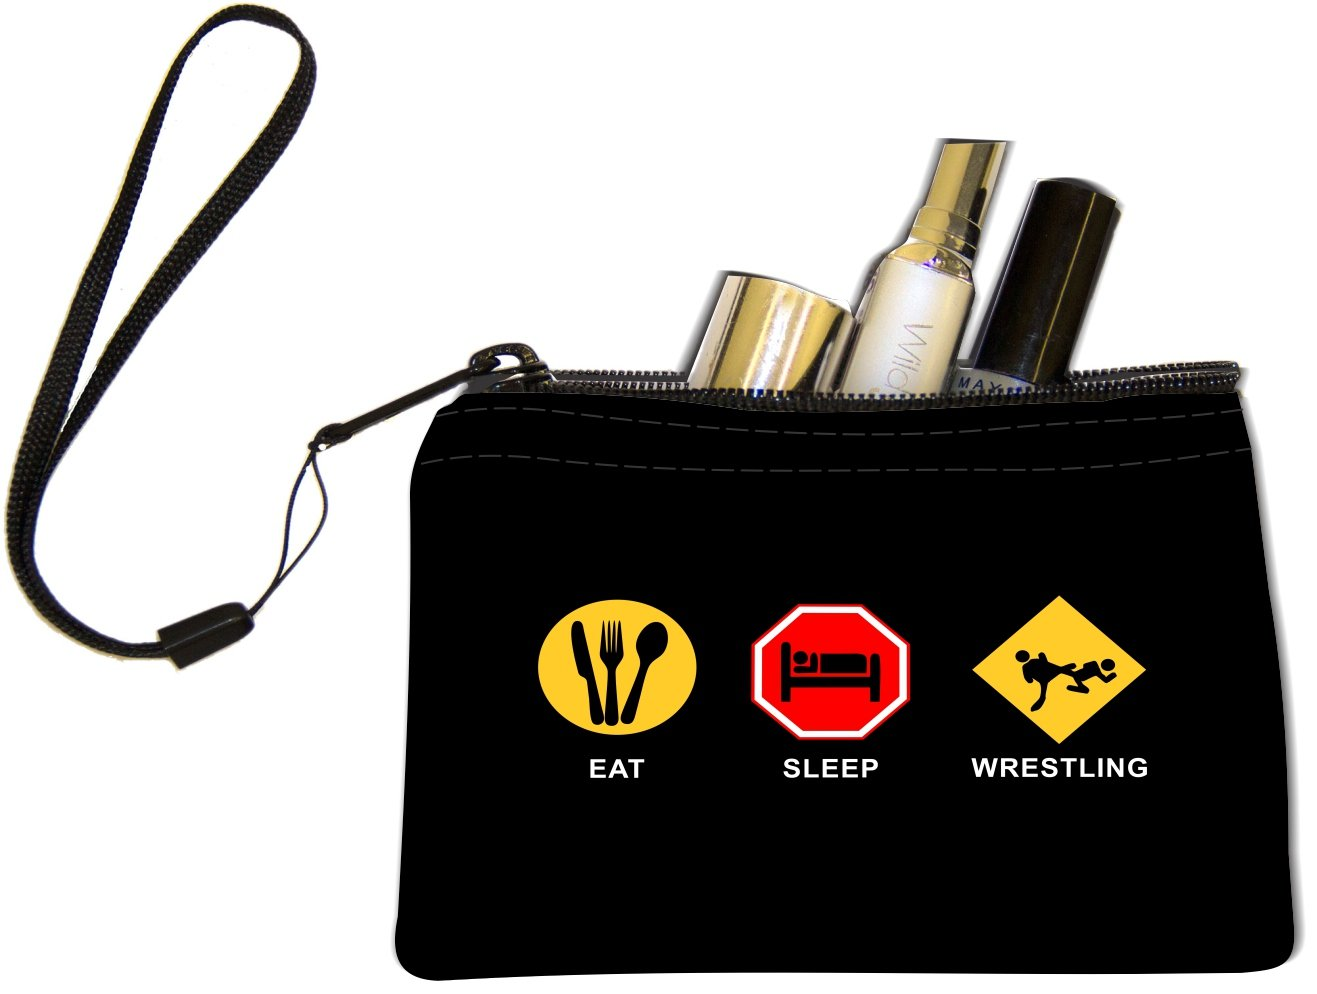 Rikki Knight Eat Sleep Wrestling Design Keys Coins Cards Cosmetic Mini Clutch Wristlet